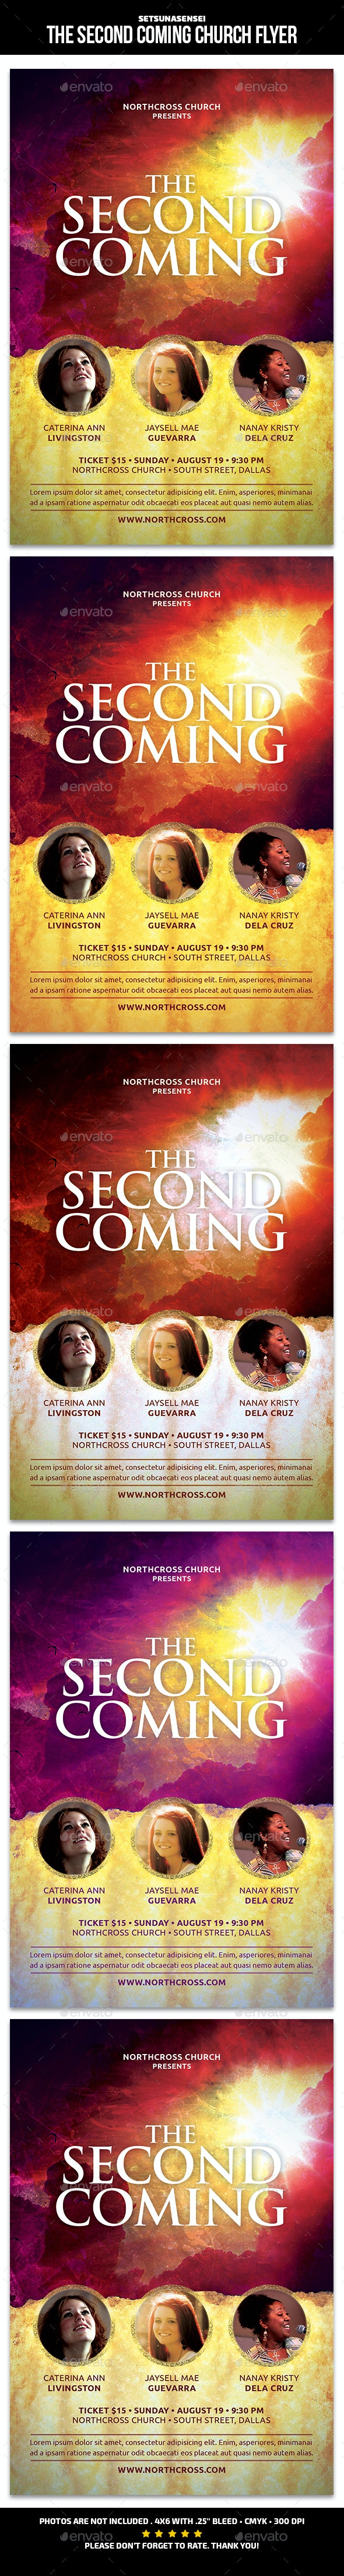 The Second Coming Church Flyer - Church Flyers